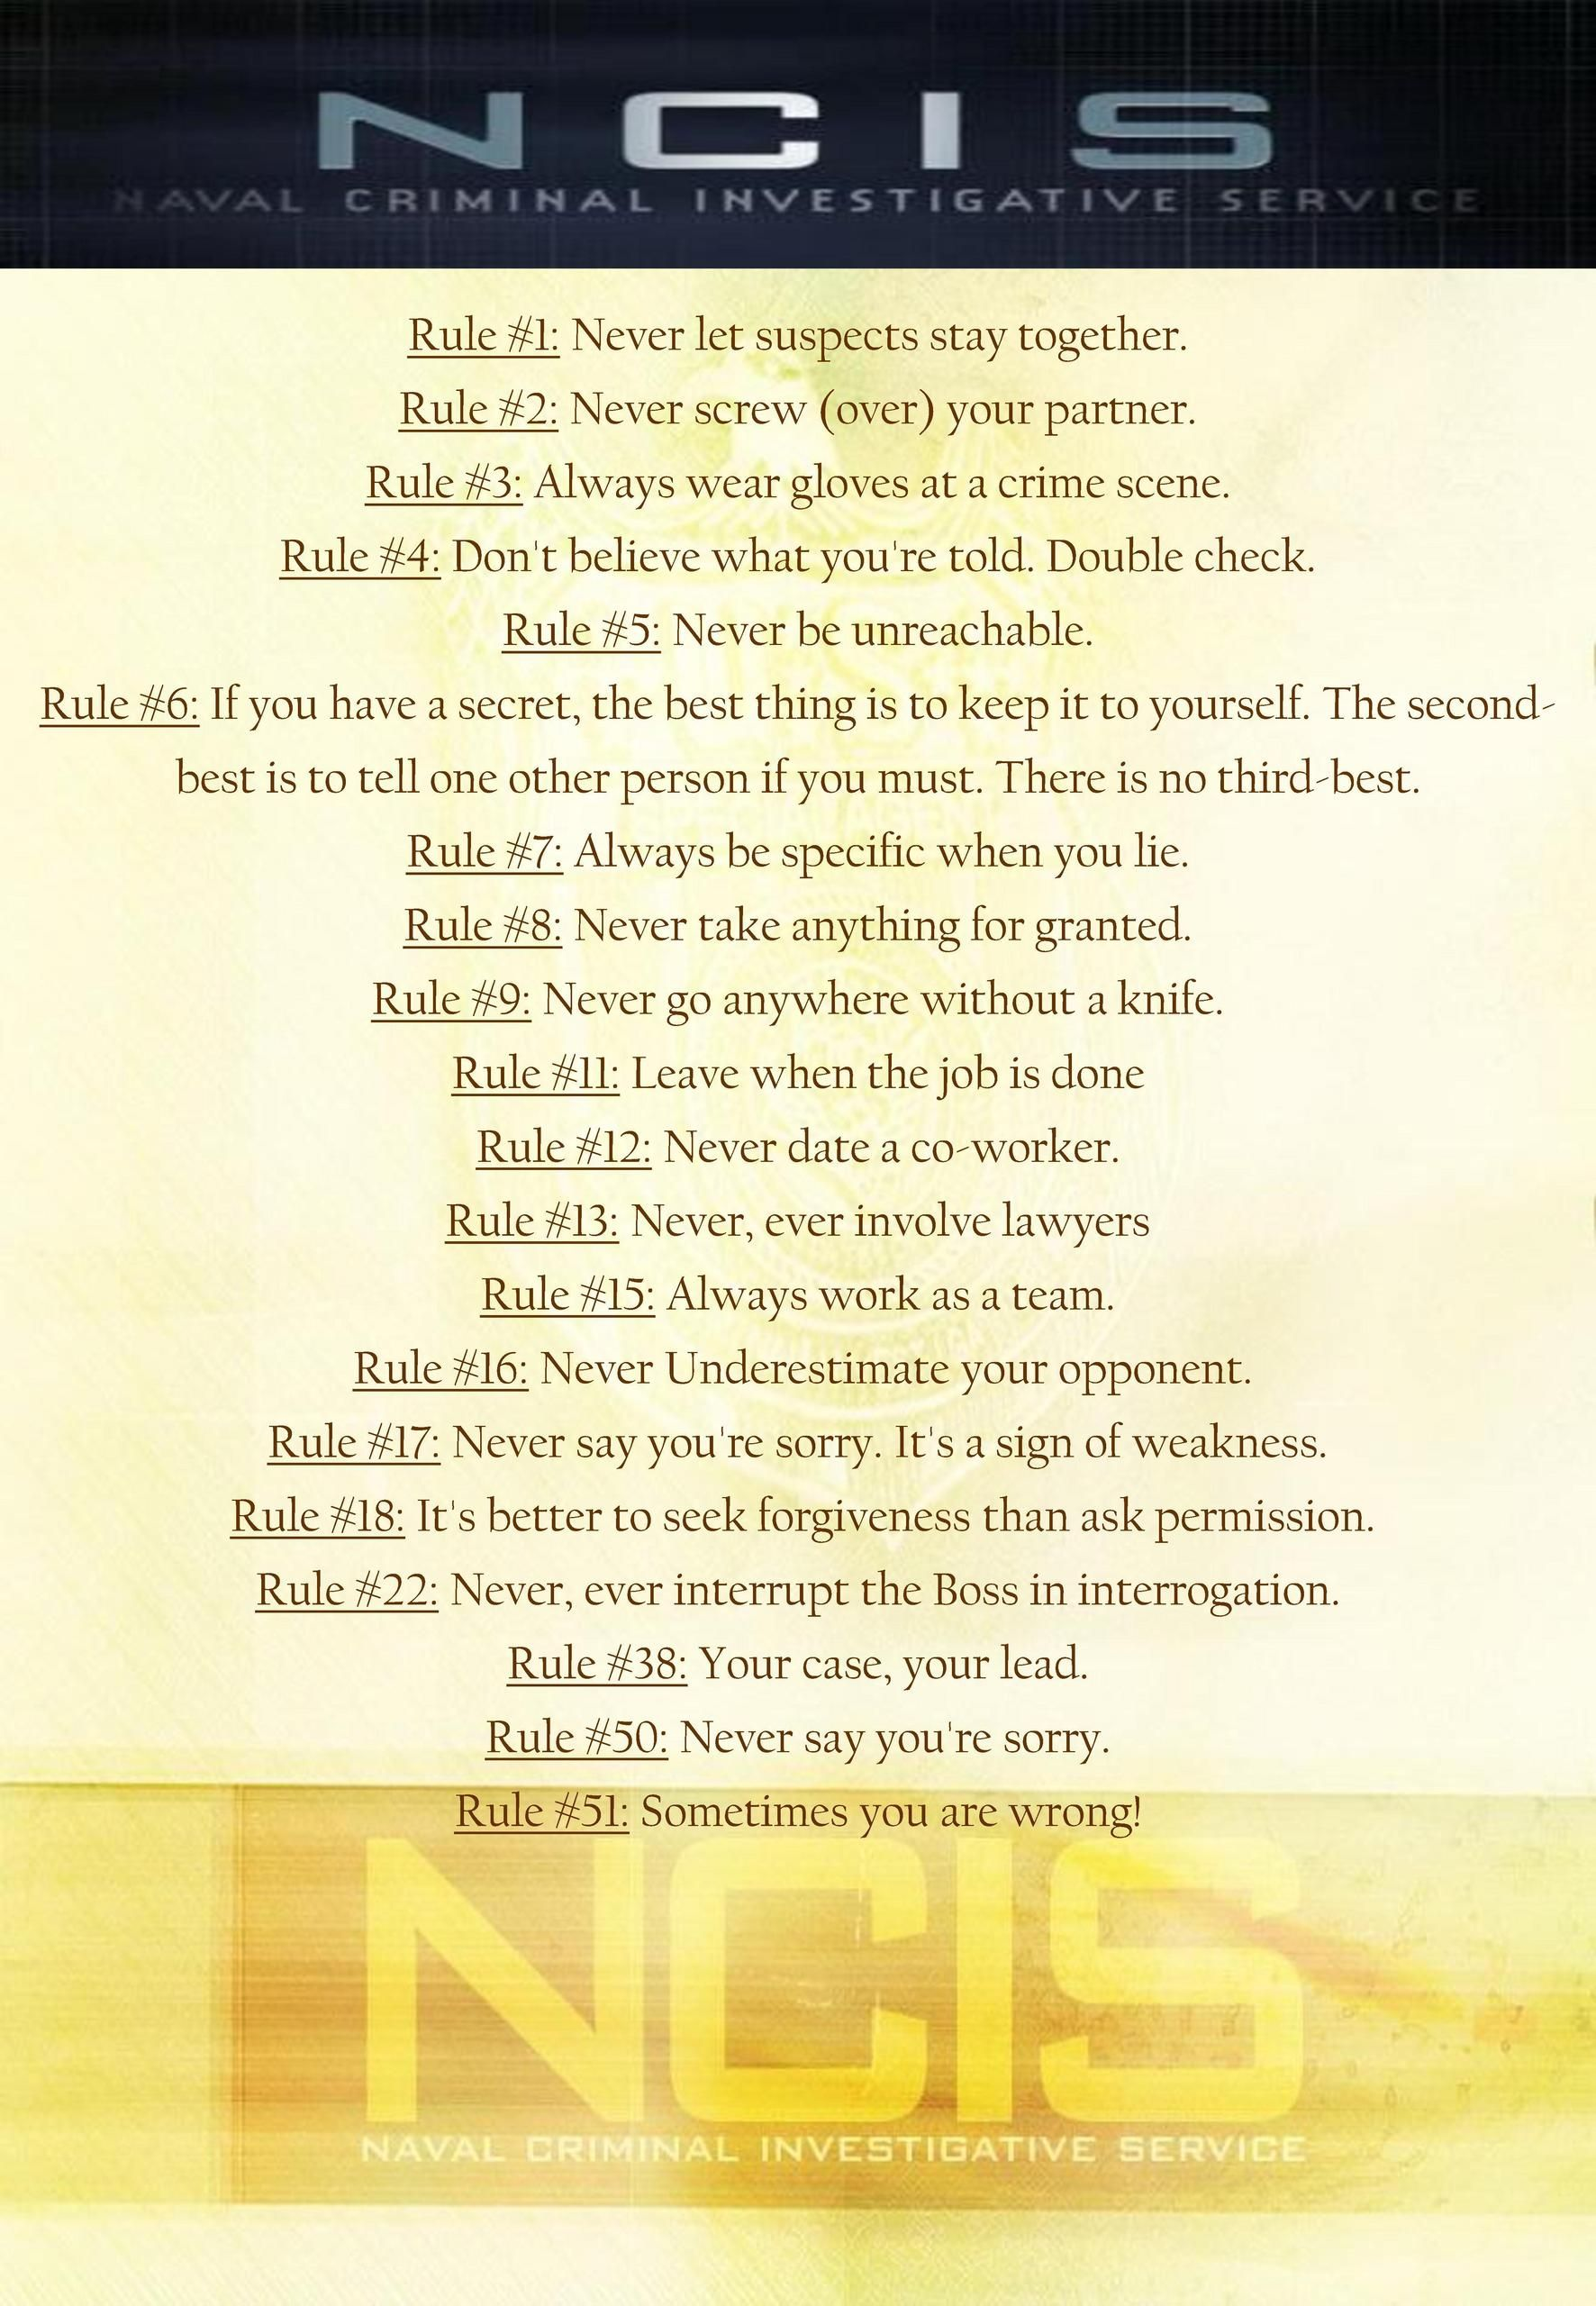 photo about Ncis Gibbs Rules Printable List known as Gibbs Guidelines Poster - Studying Mars